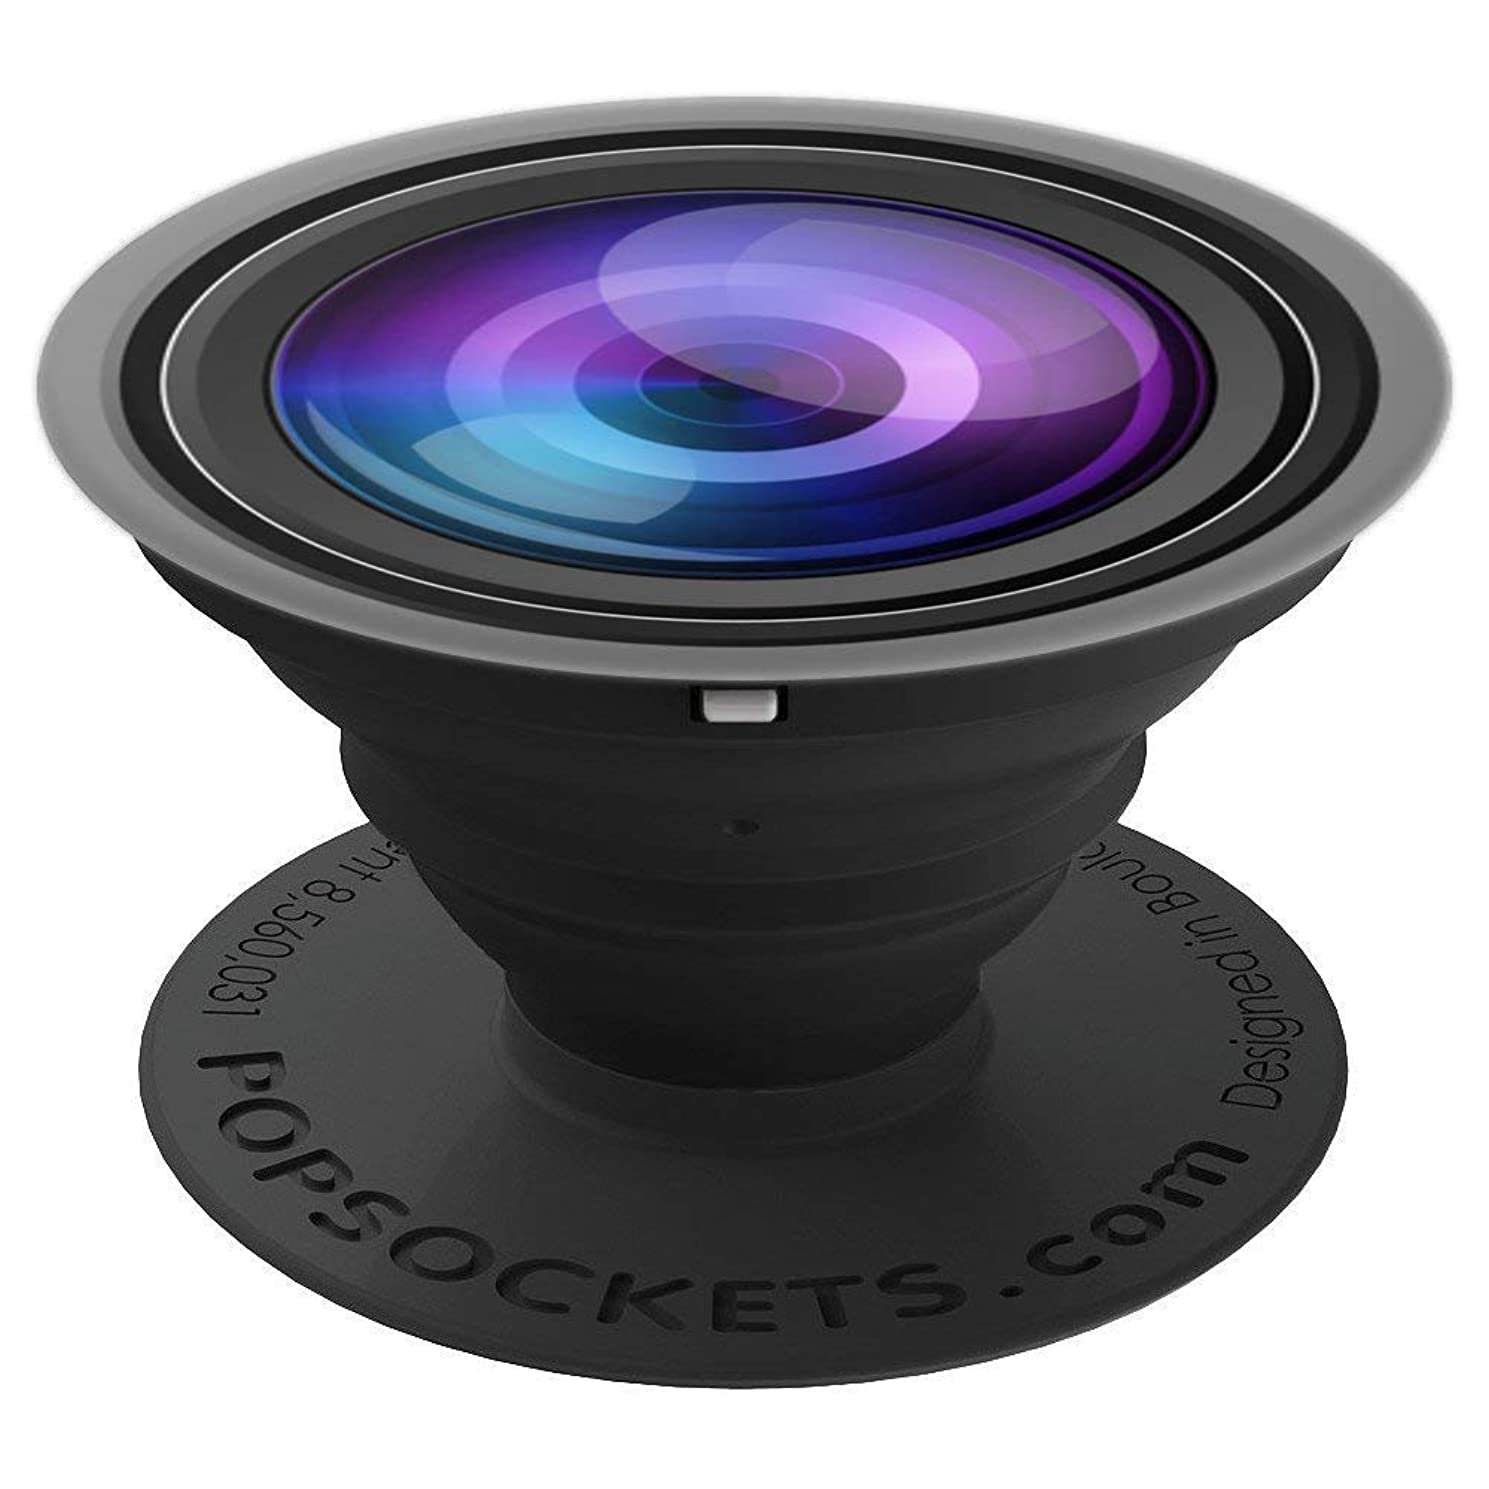 Cool Camera Lens Zoom Eye Design Photographer Photography - PopSockets Grip and Stand for Phones and Tablets